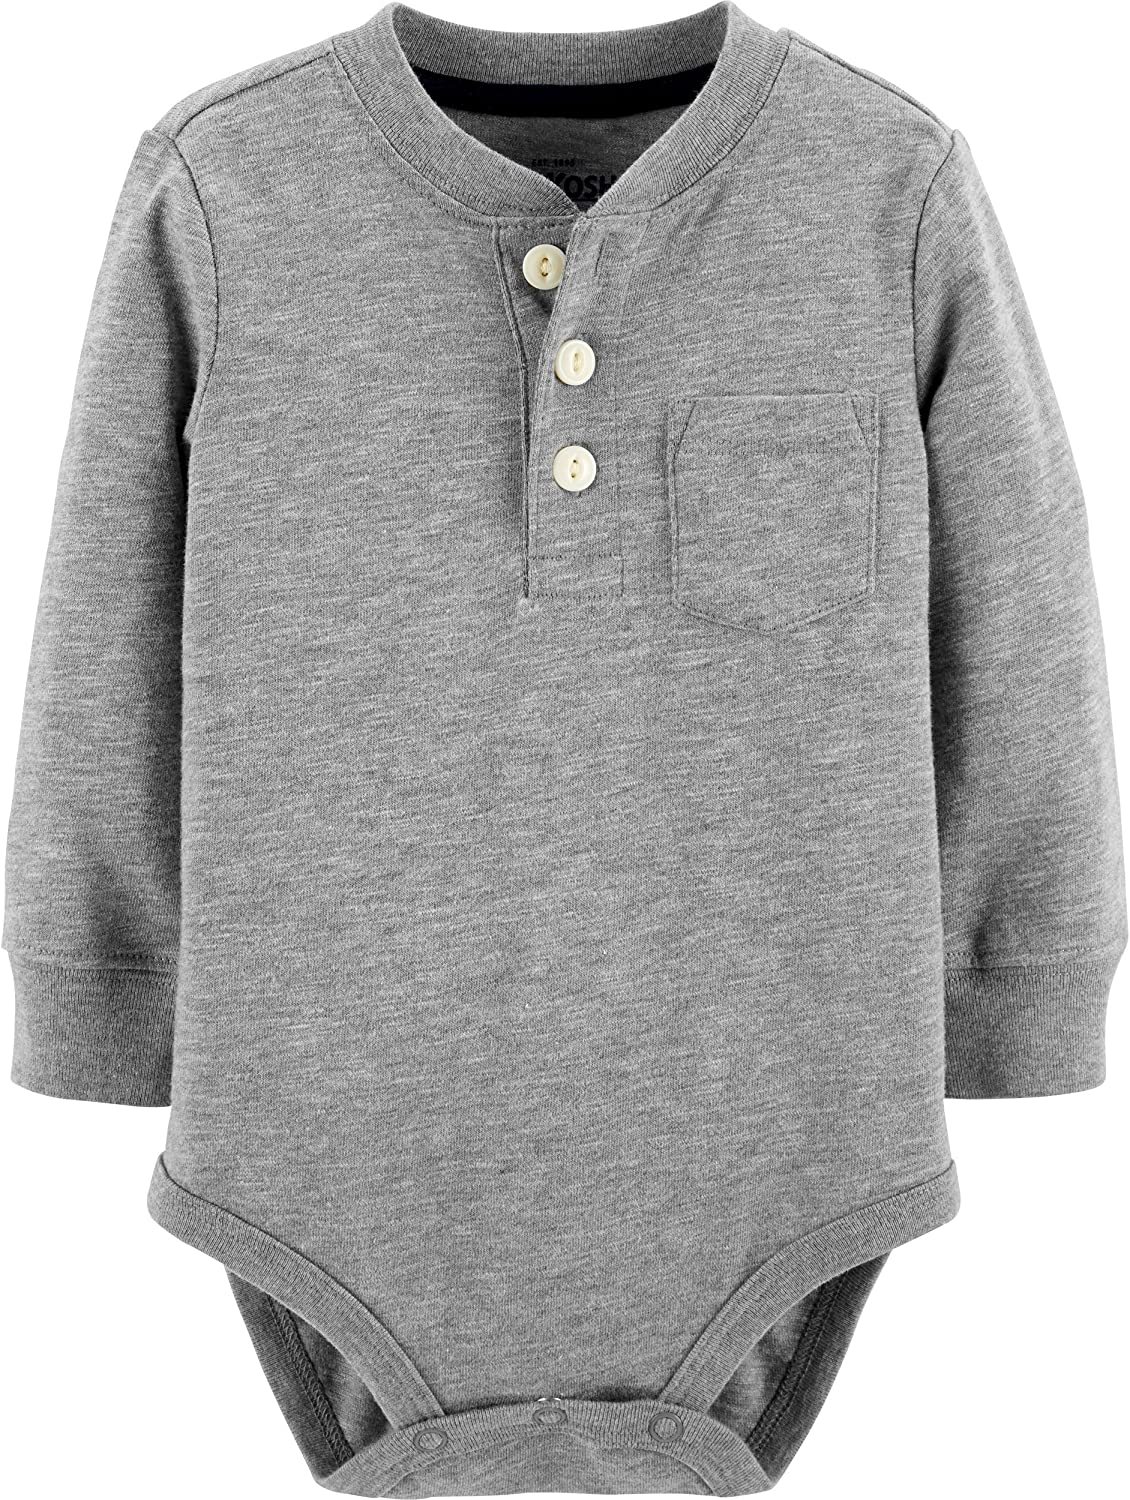 OshKosh BGosh Baby Boys Pocket Henley Bodysuits